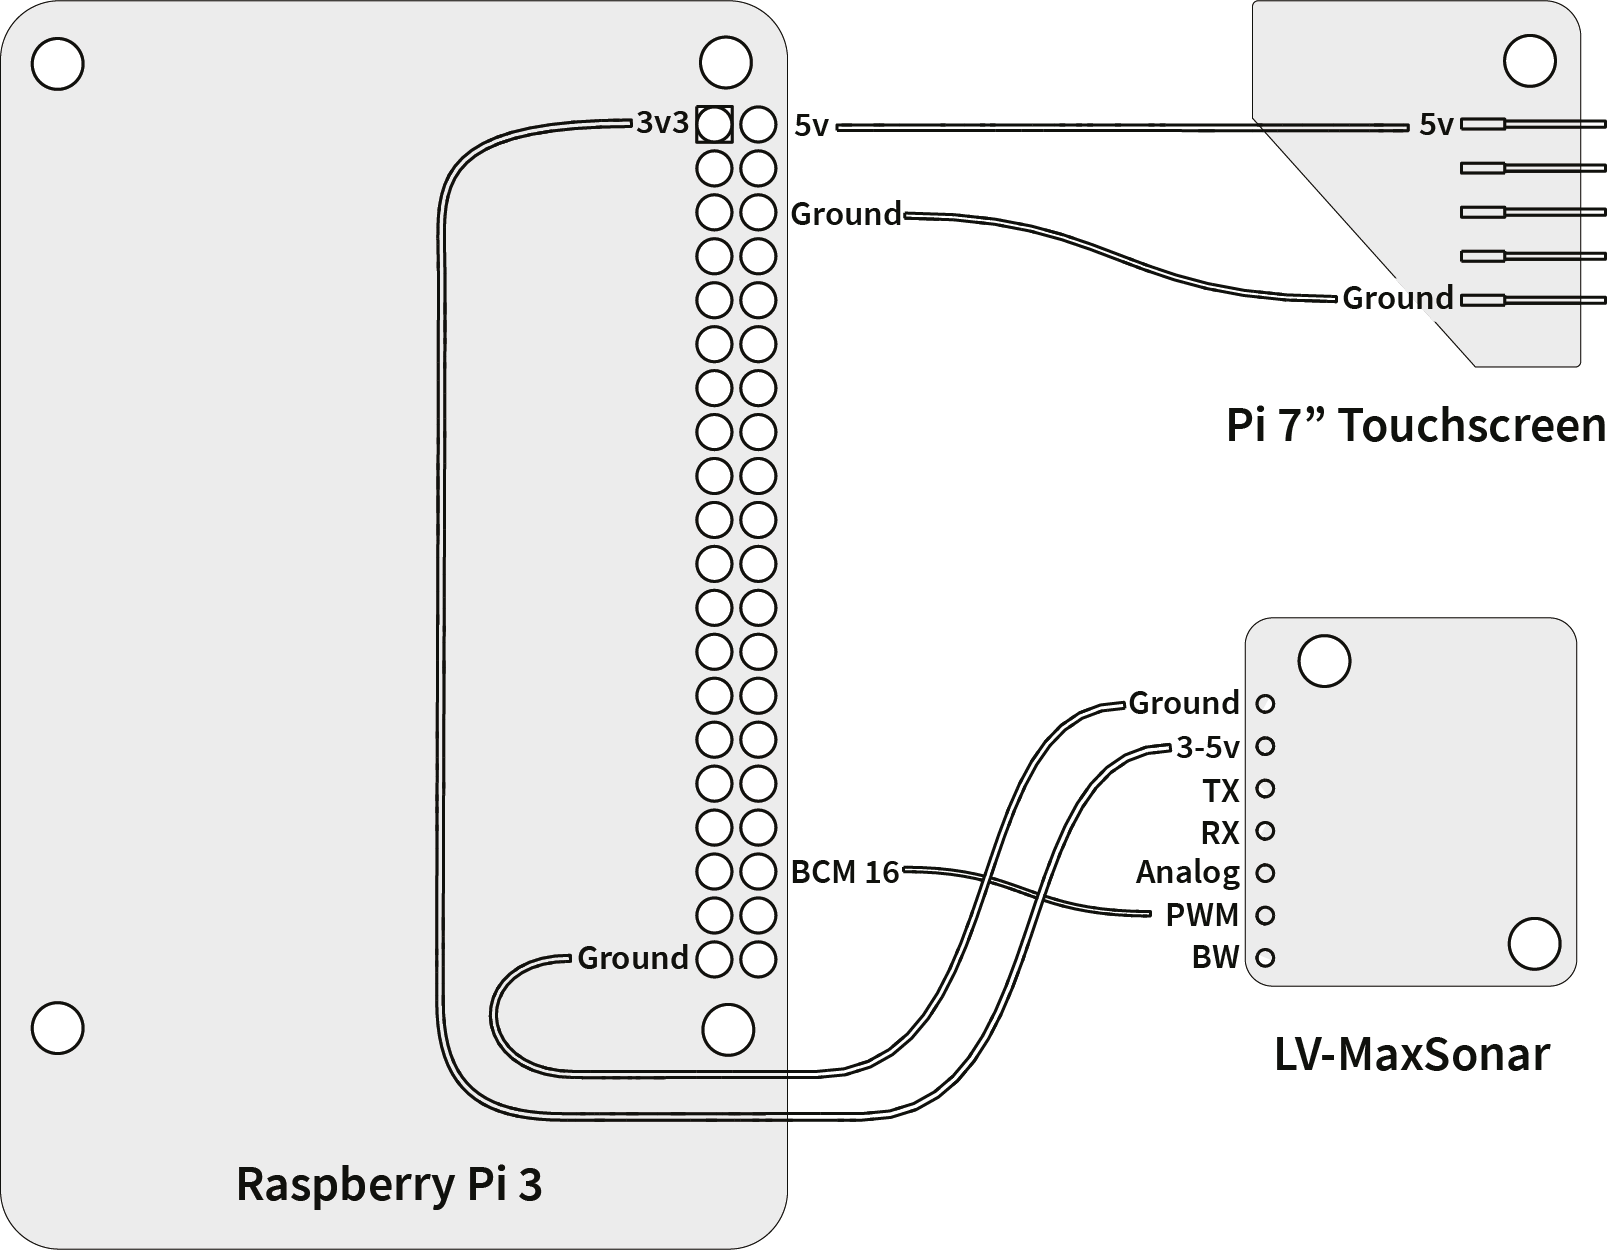 Connecting the Pi to the touchscreen and sensor